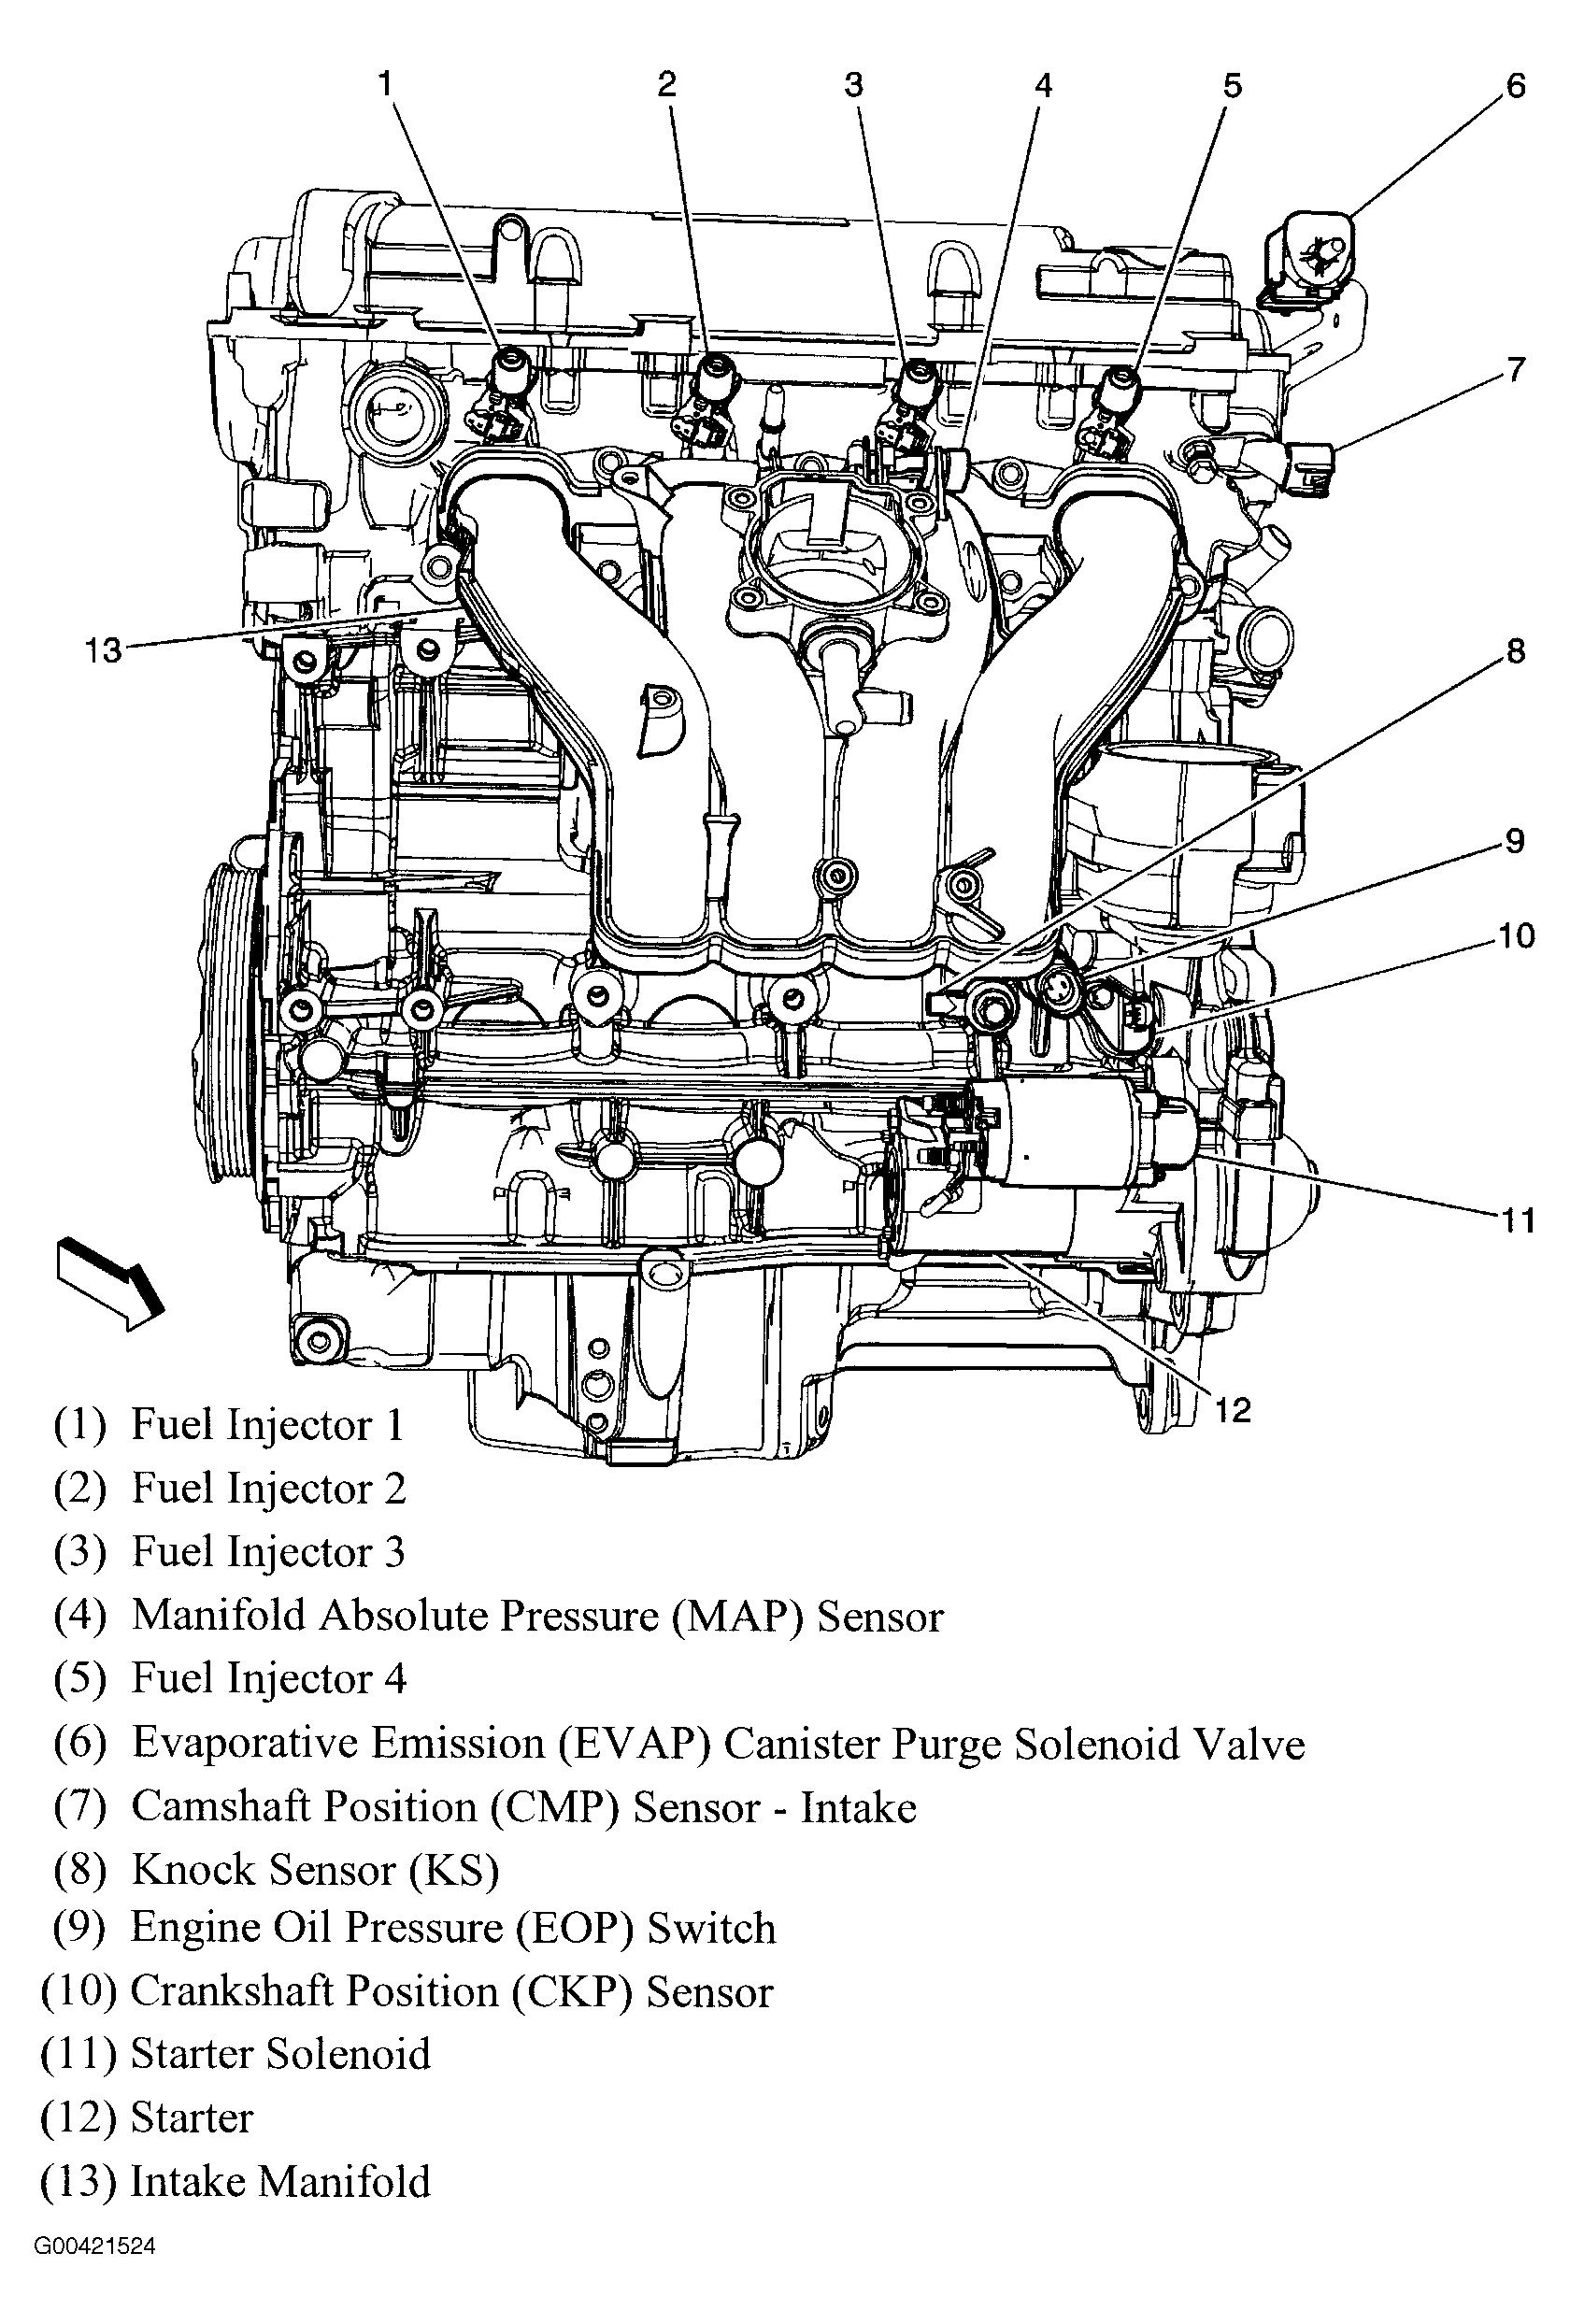 Chevy 4 2l Engine Diagram Quick Start Guide Of Wiring Gmc Envoy Parts 2 Database Rh 15 5 Infection Nl De Ford 42